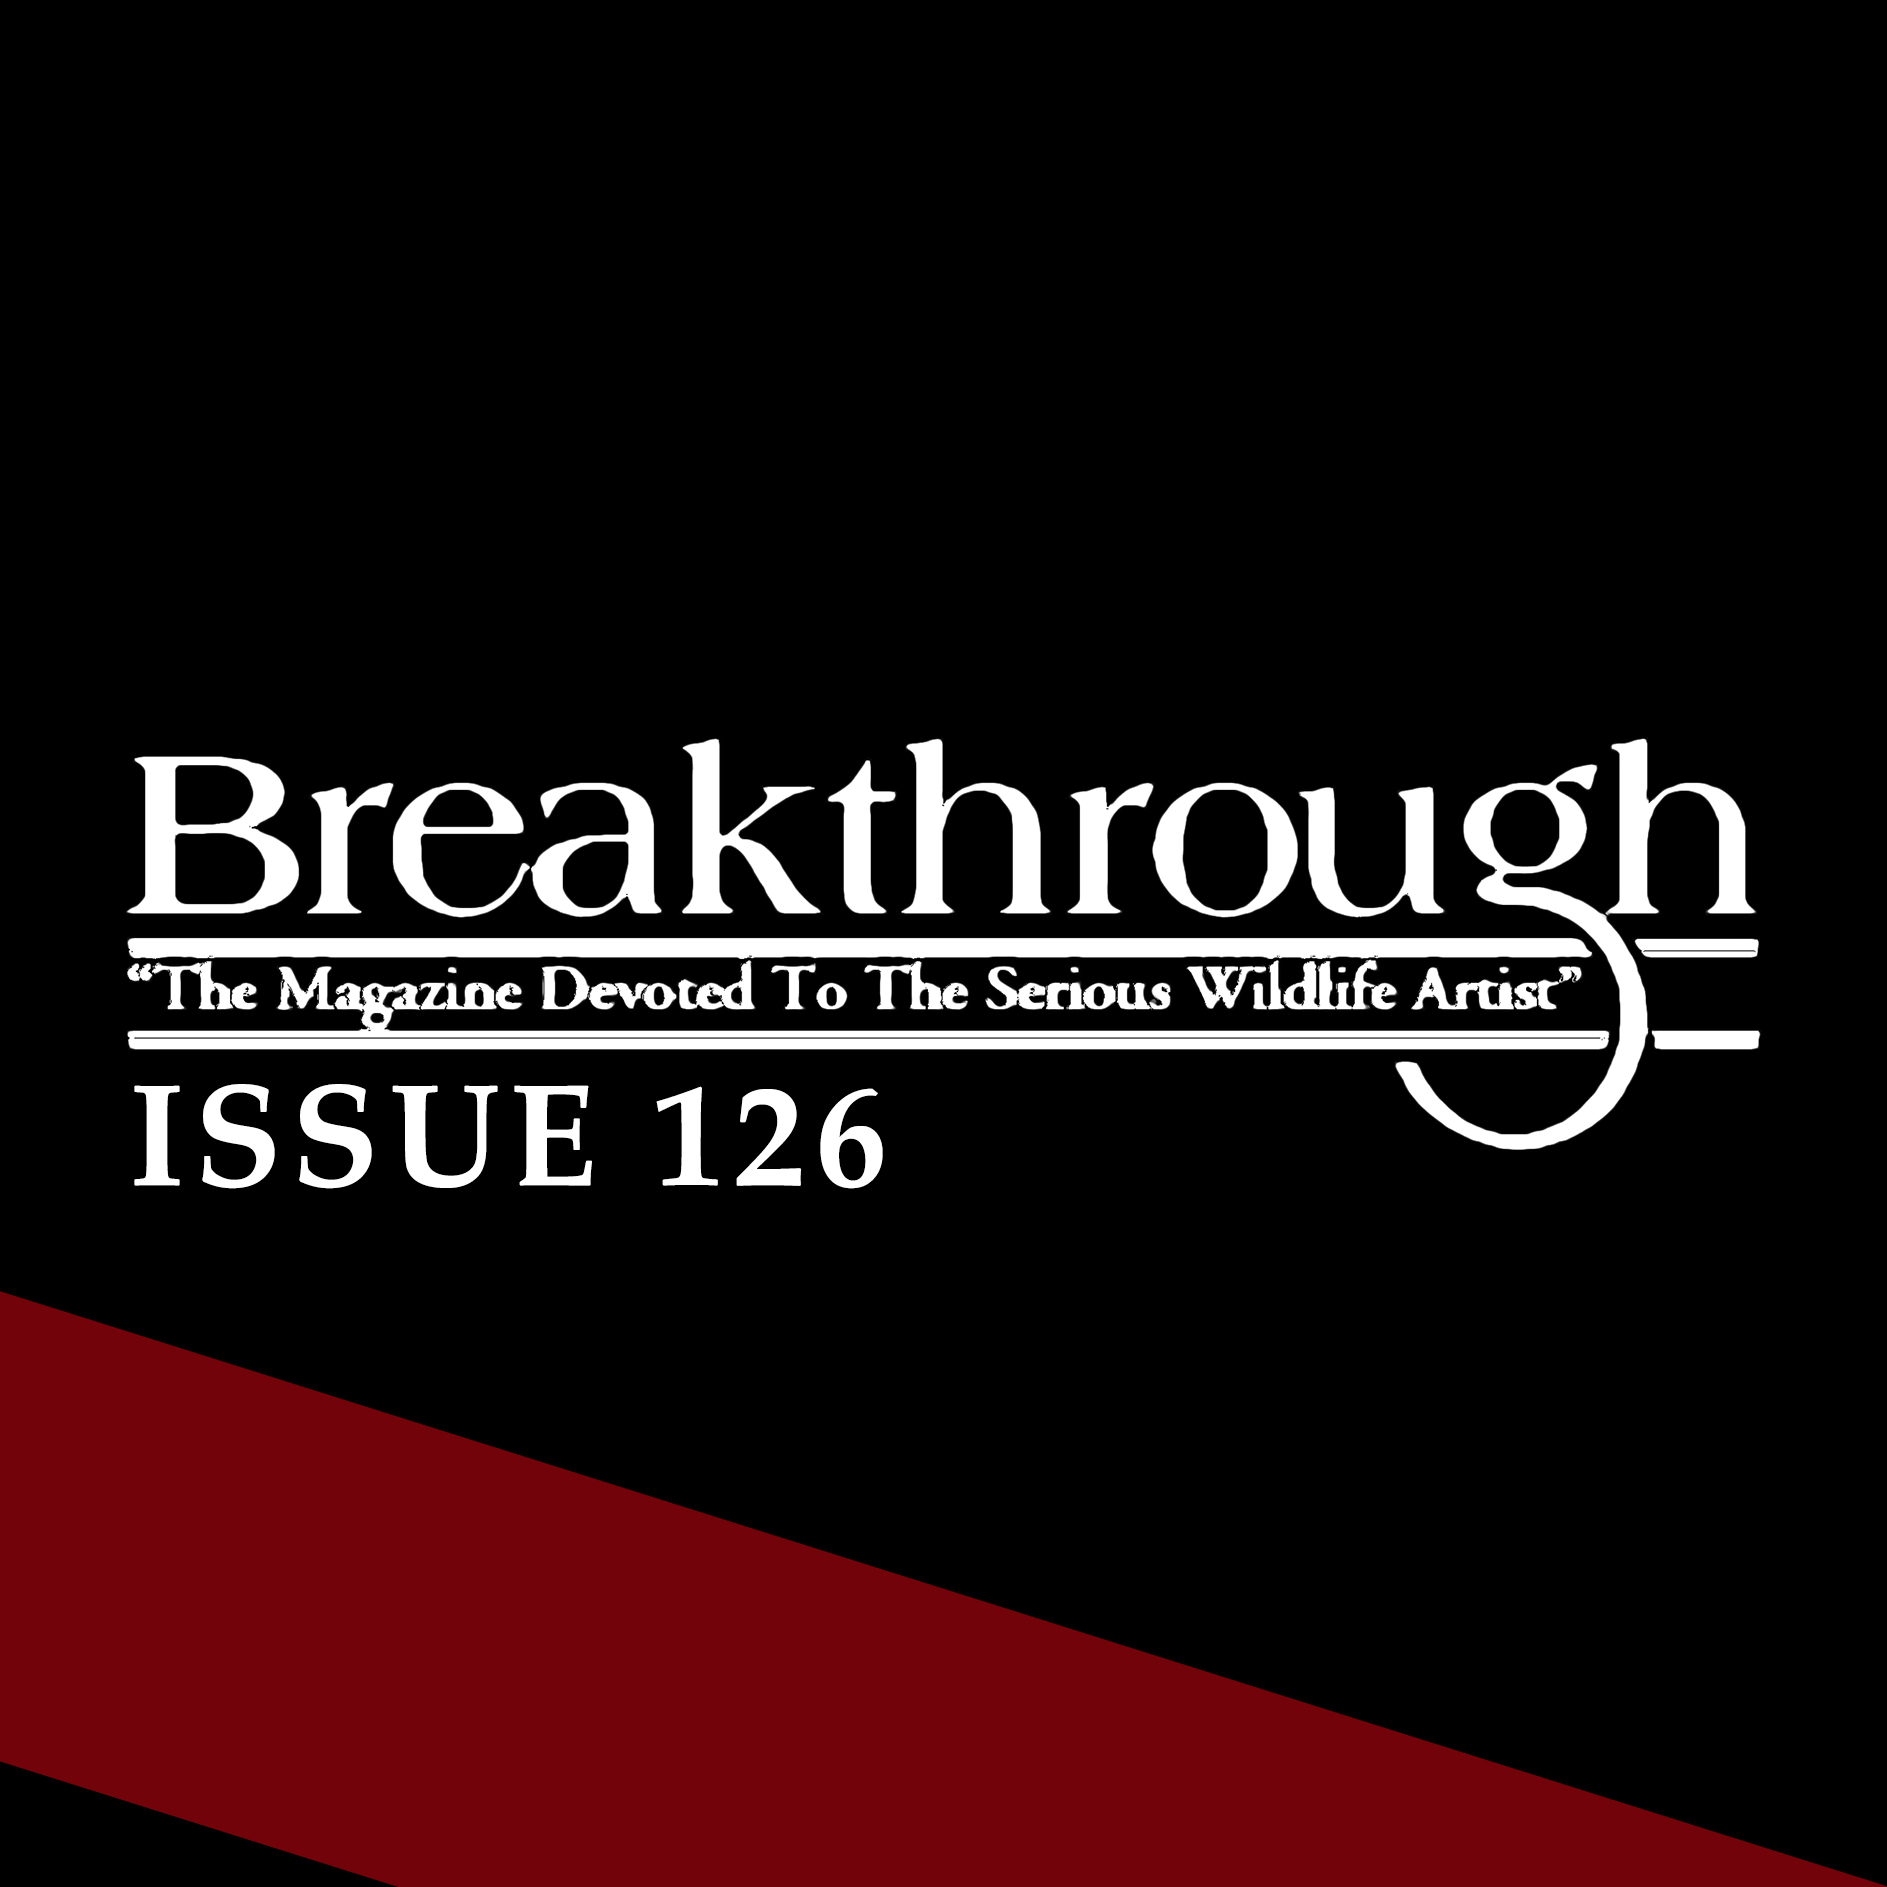 Breakthrough Magazine Issue 126.jpg